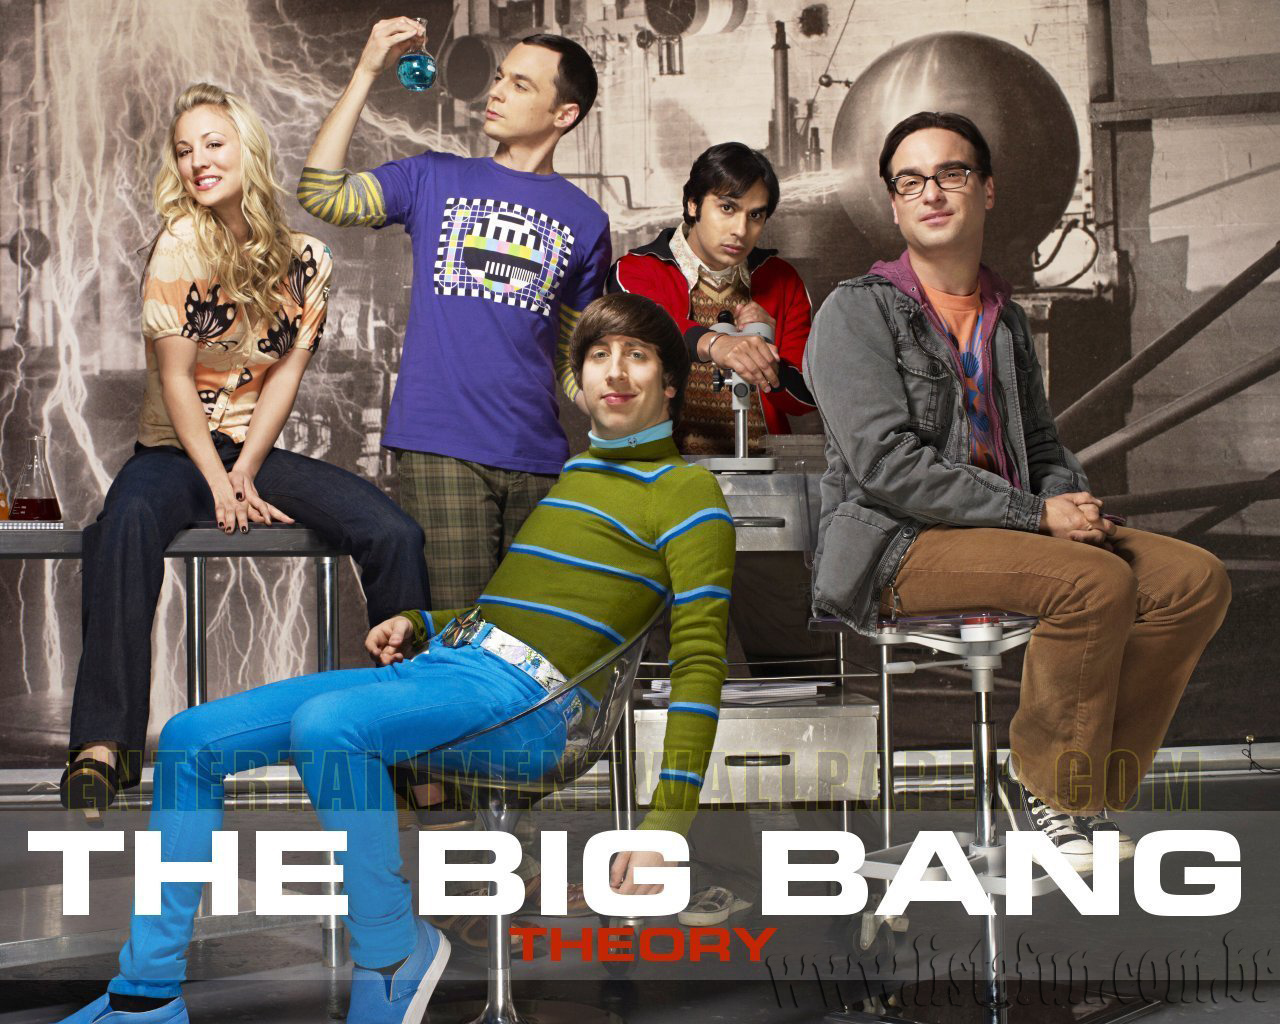 http://2.bp.blogspot.com/-nd55QiMcpbY/UMUIXh0sCPI/AAAAAAAAAcE/9fu6gyWyxVs/s1600/wallpaper-nerds-the-big-bang-theory-2437.jpg